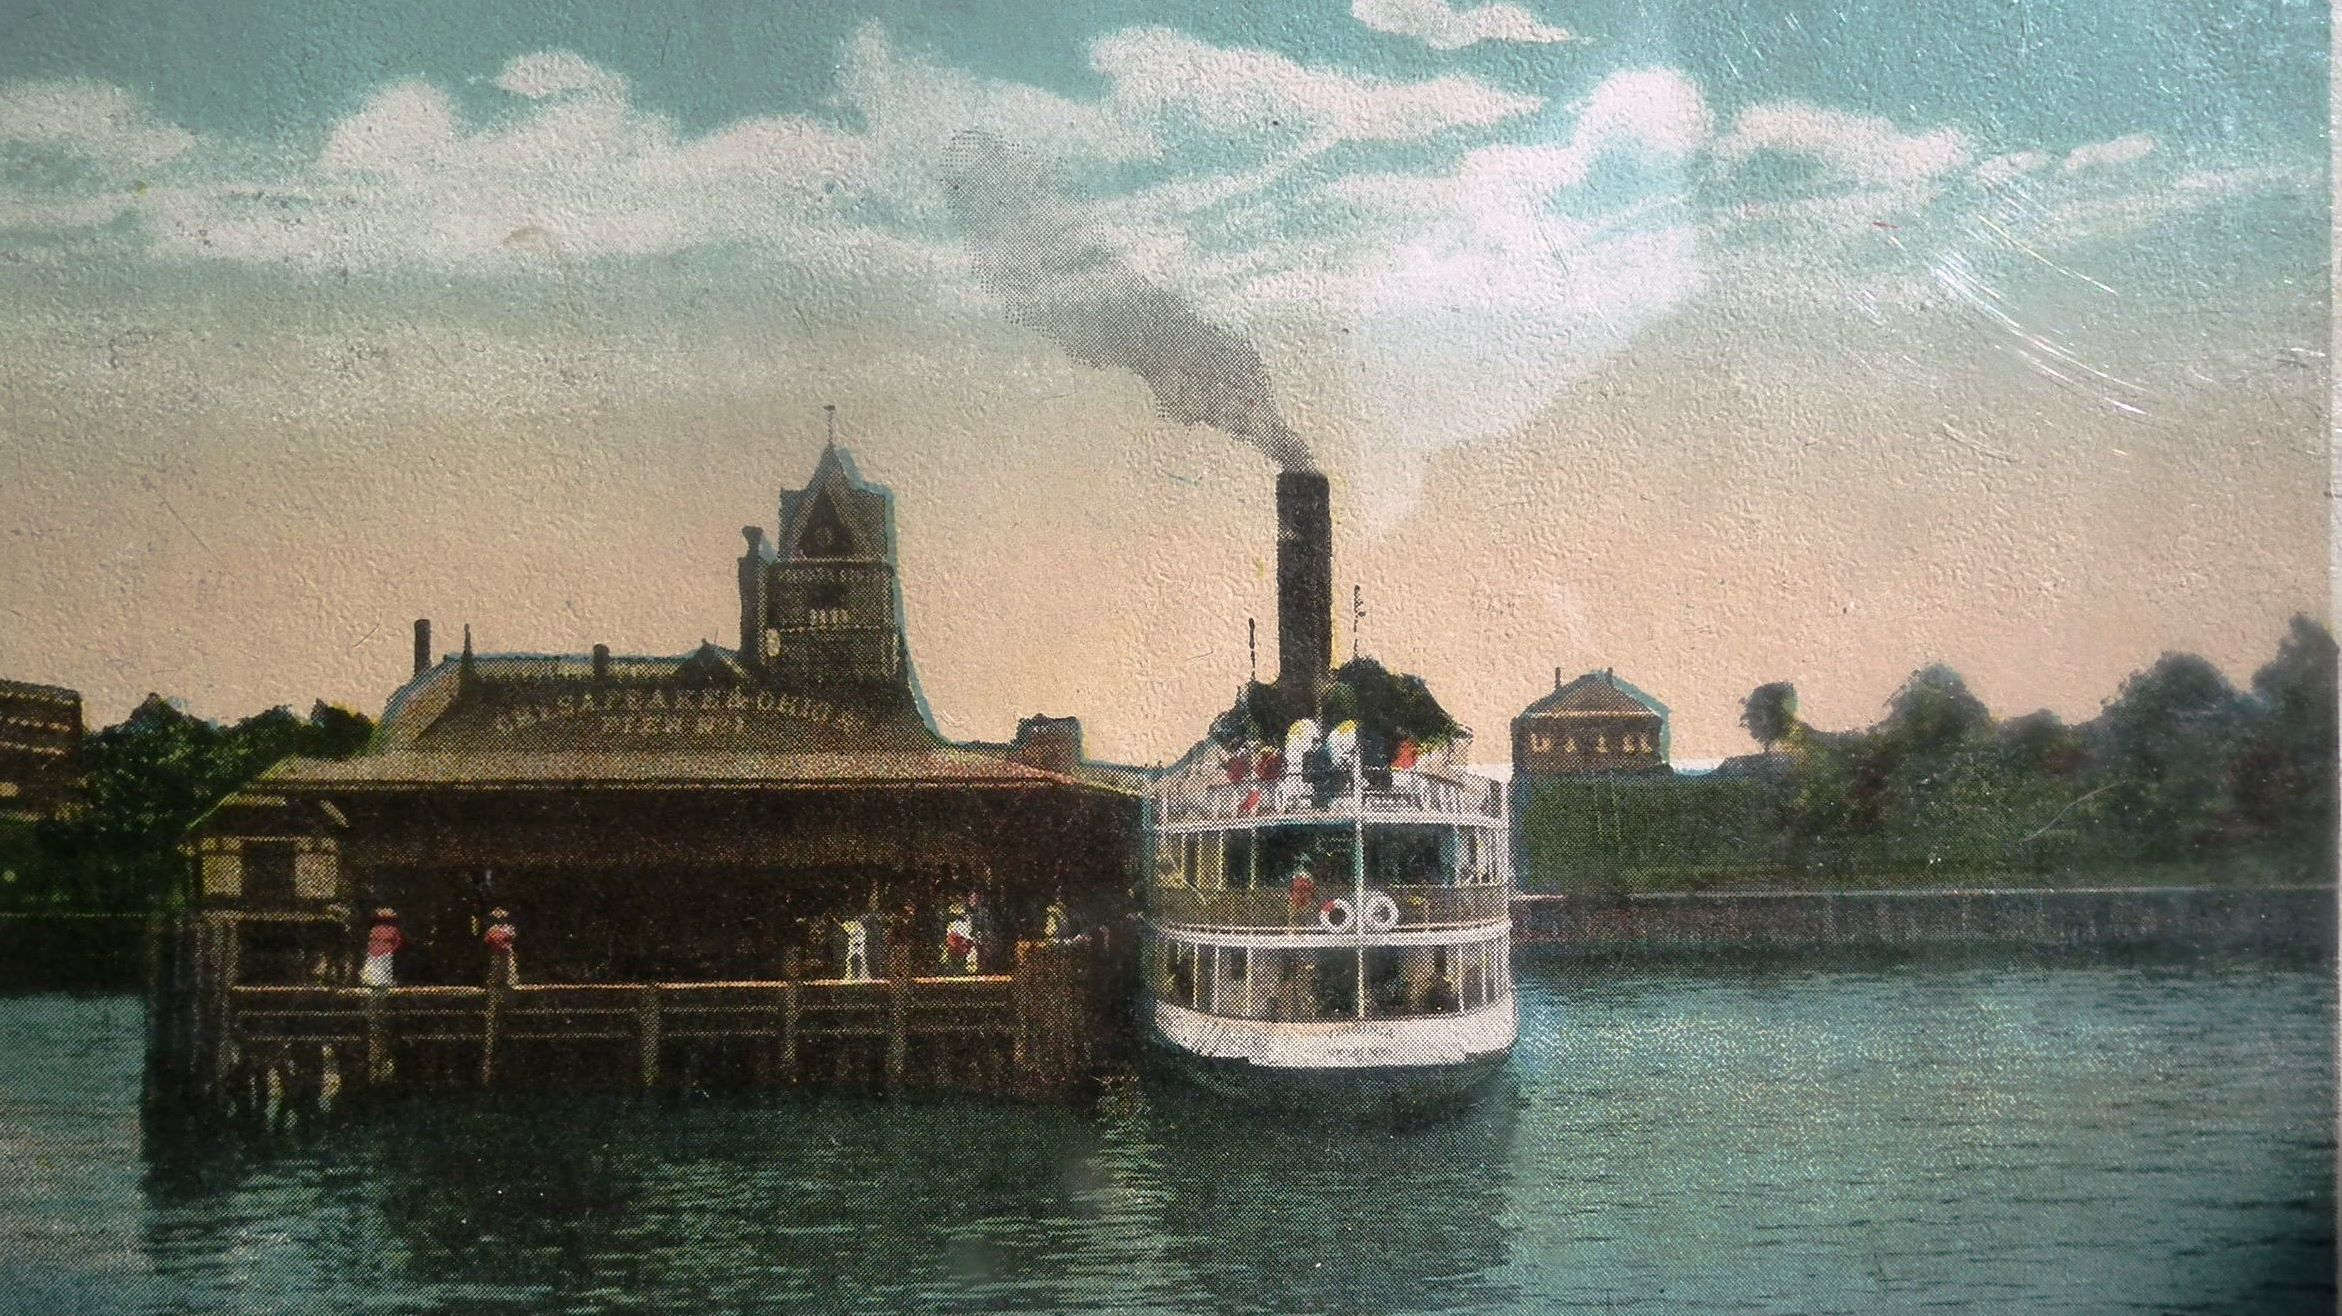 Steamboats of the Chesapeake